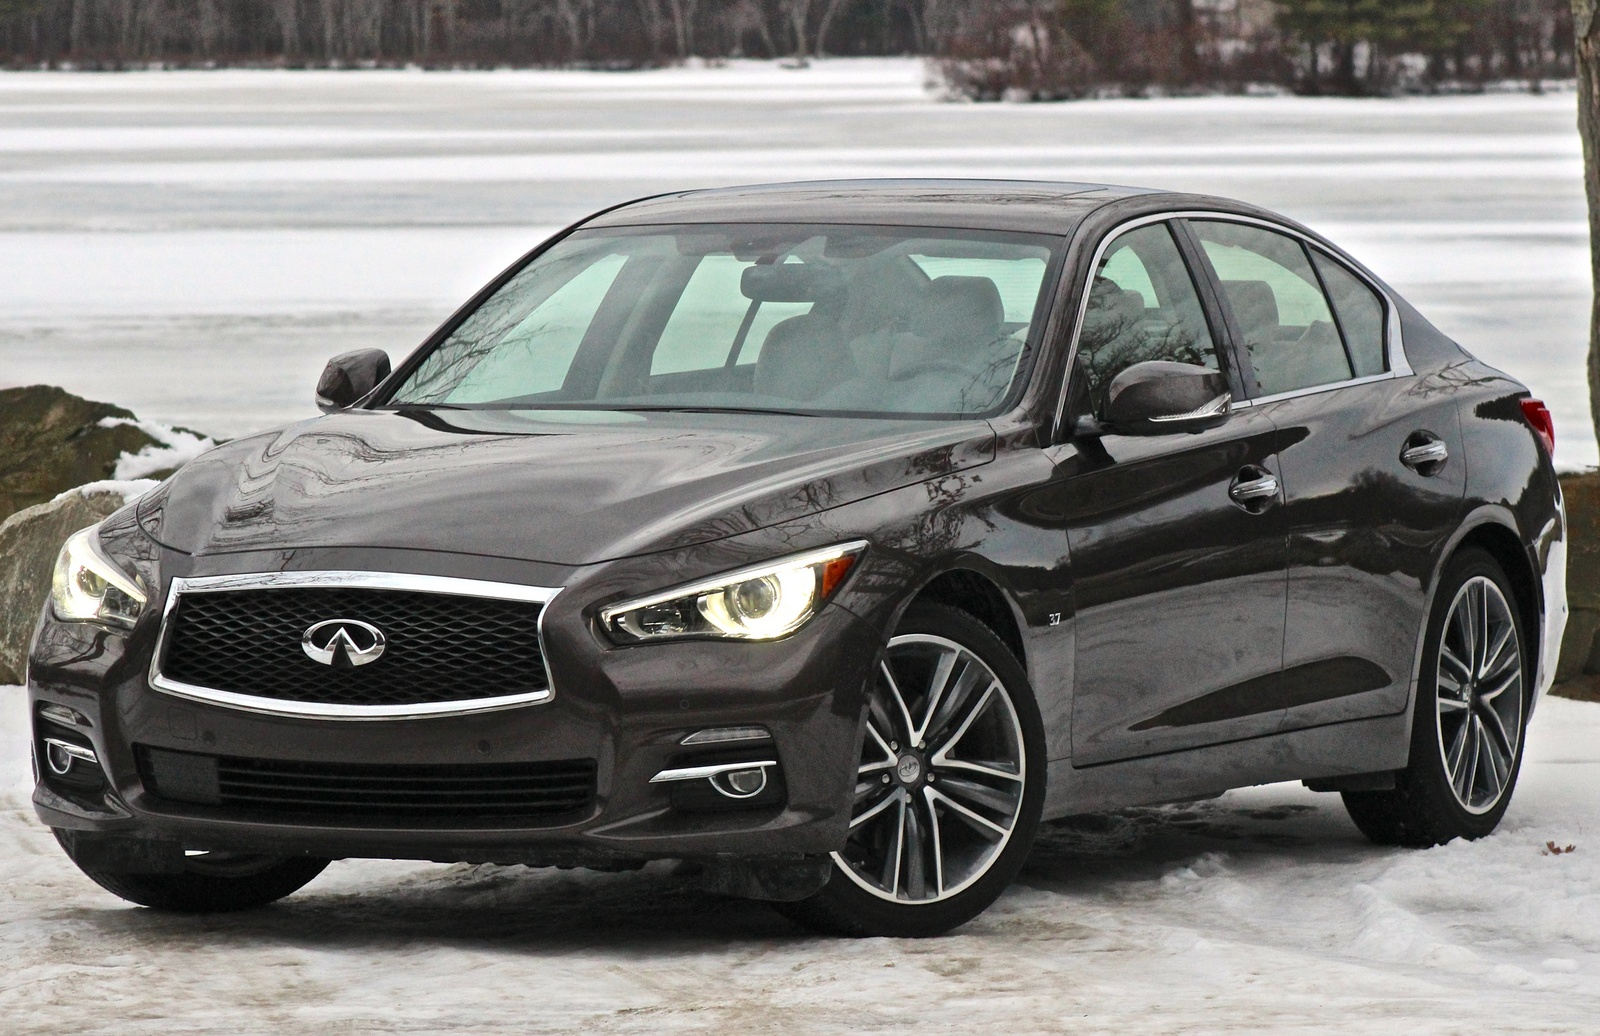 2014 infiniti q50 test drive review cargurus. Black Bedroom Furniture Sets. Home Design Ideas